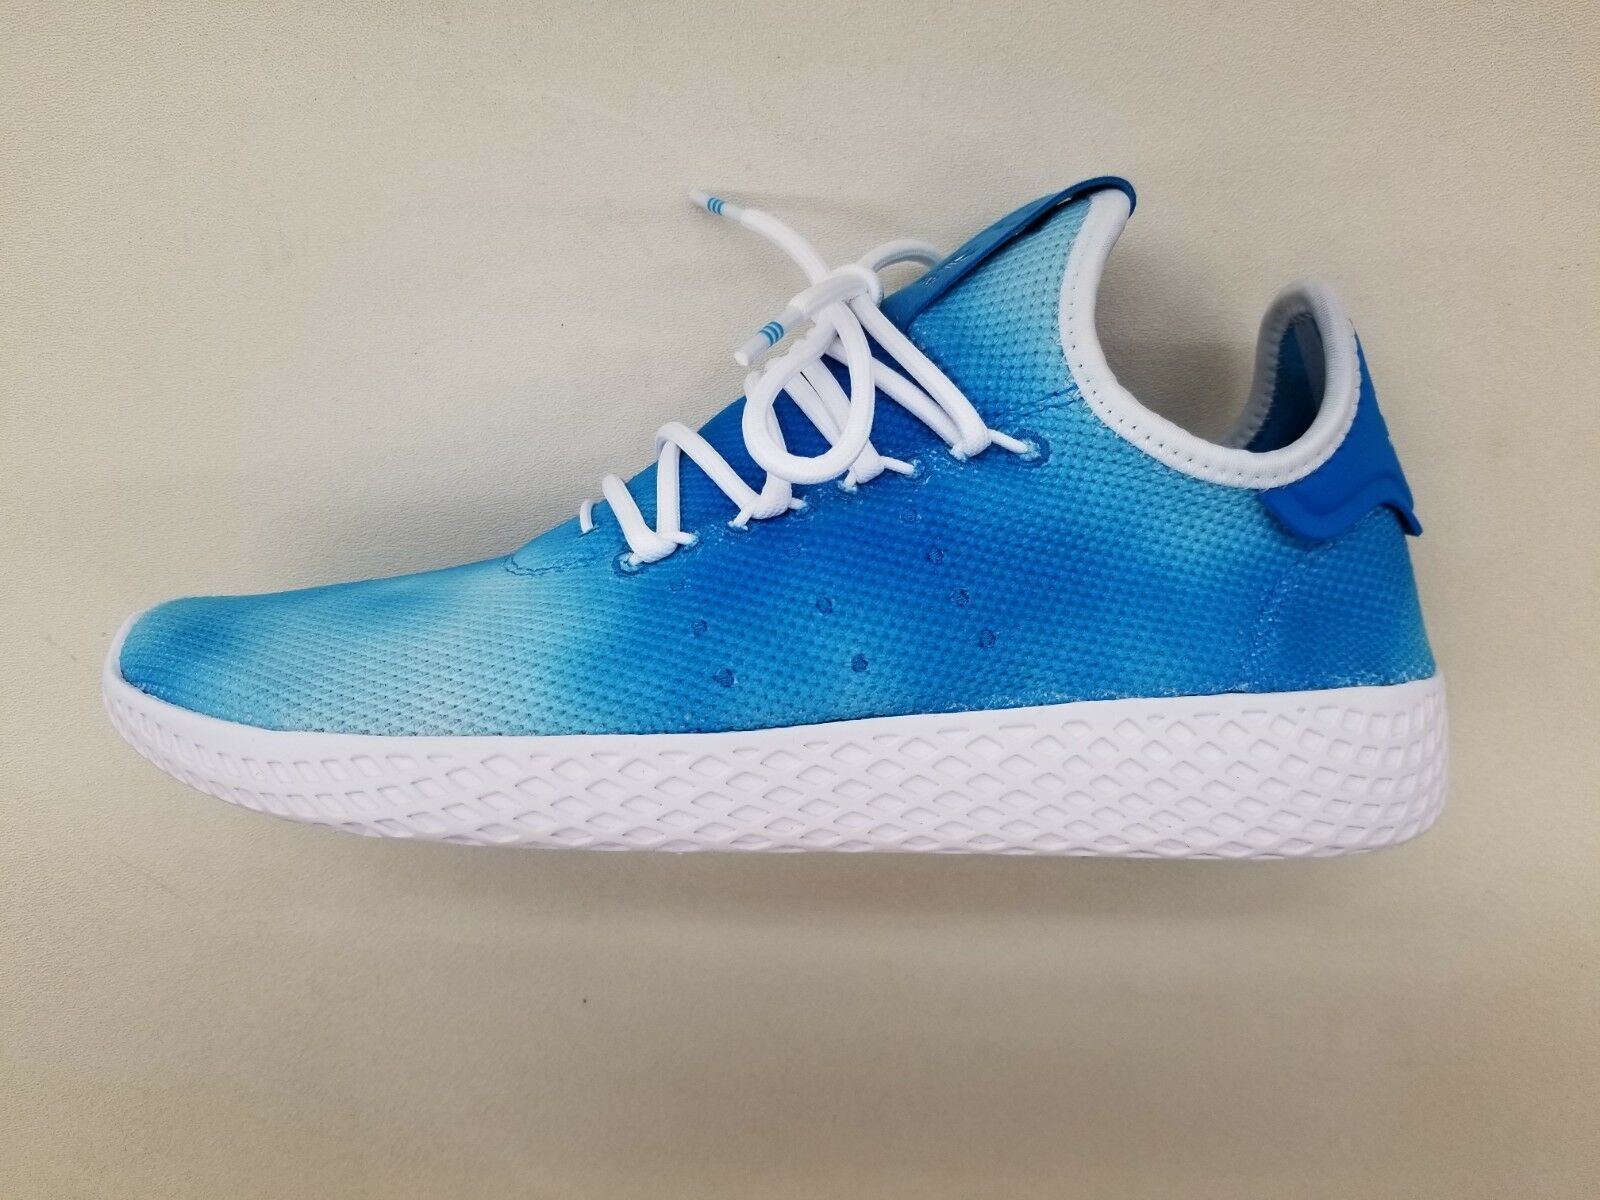 ADIDAS ORIGINALS PW HU HOLI TENNIS TYE DYE blueE WHITE MENS SNEAKERS DA9618